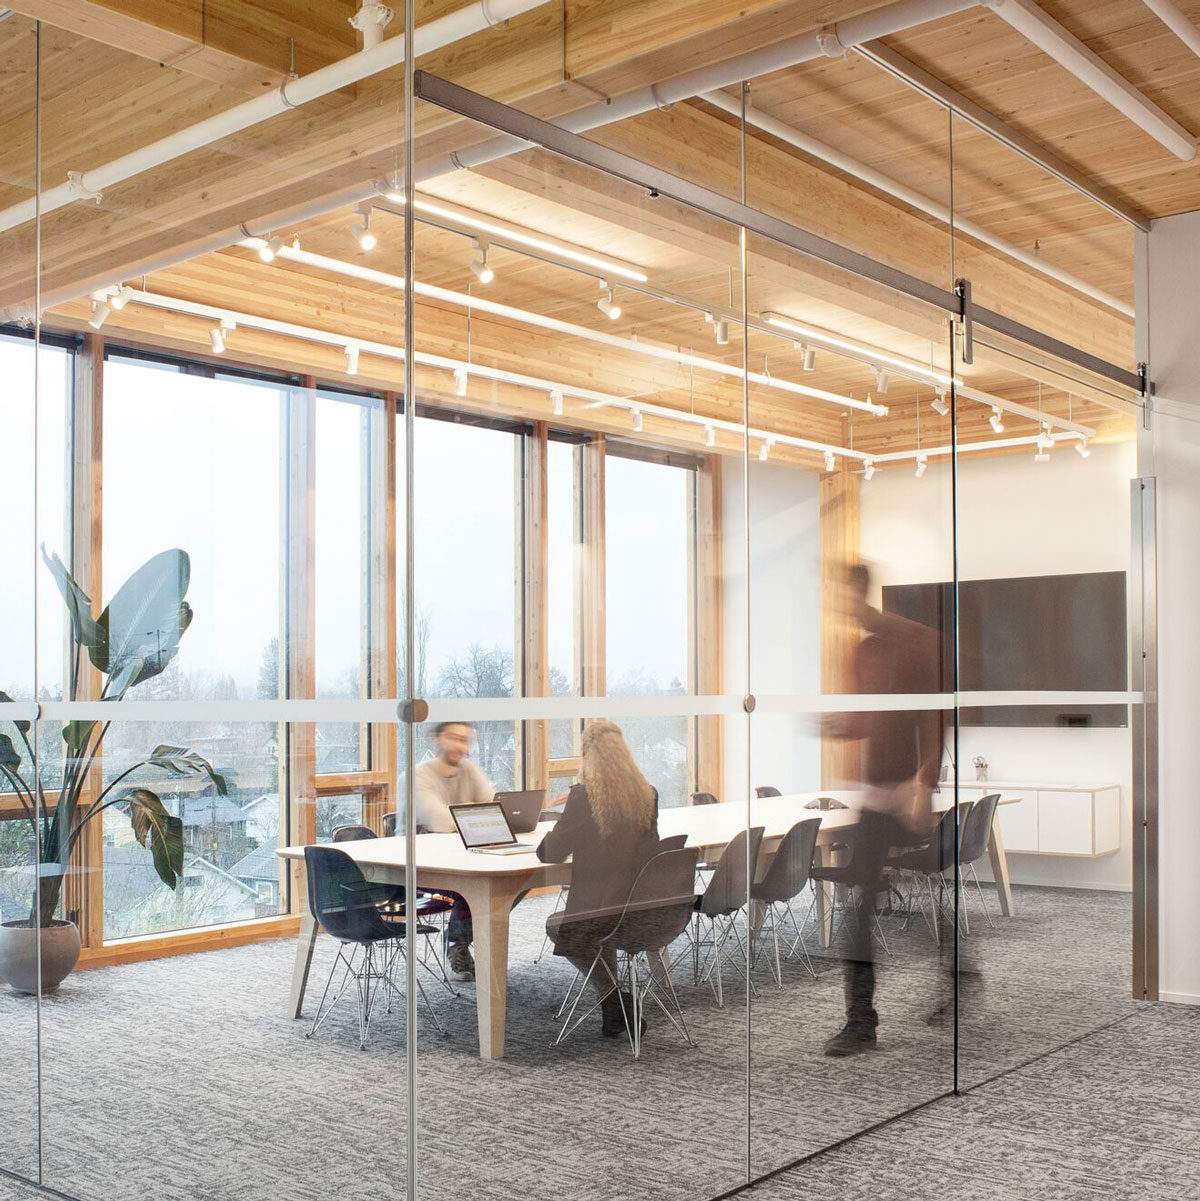 RAGNAR-lever-architecture-office-1_preview.jpg